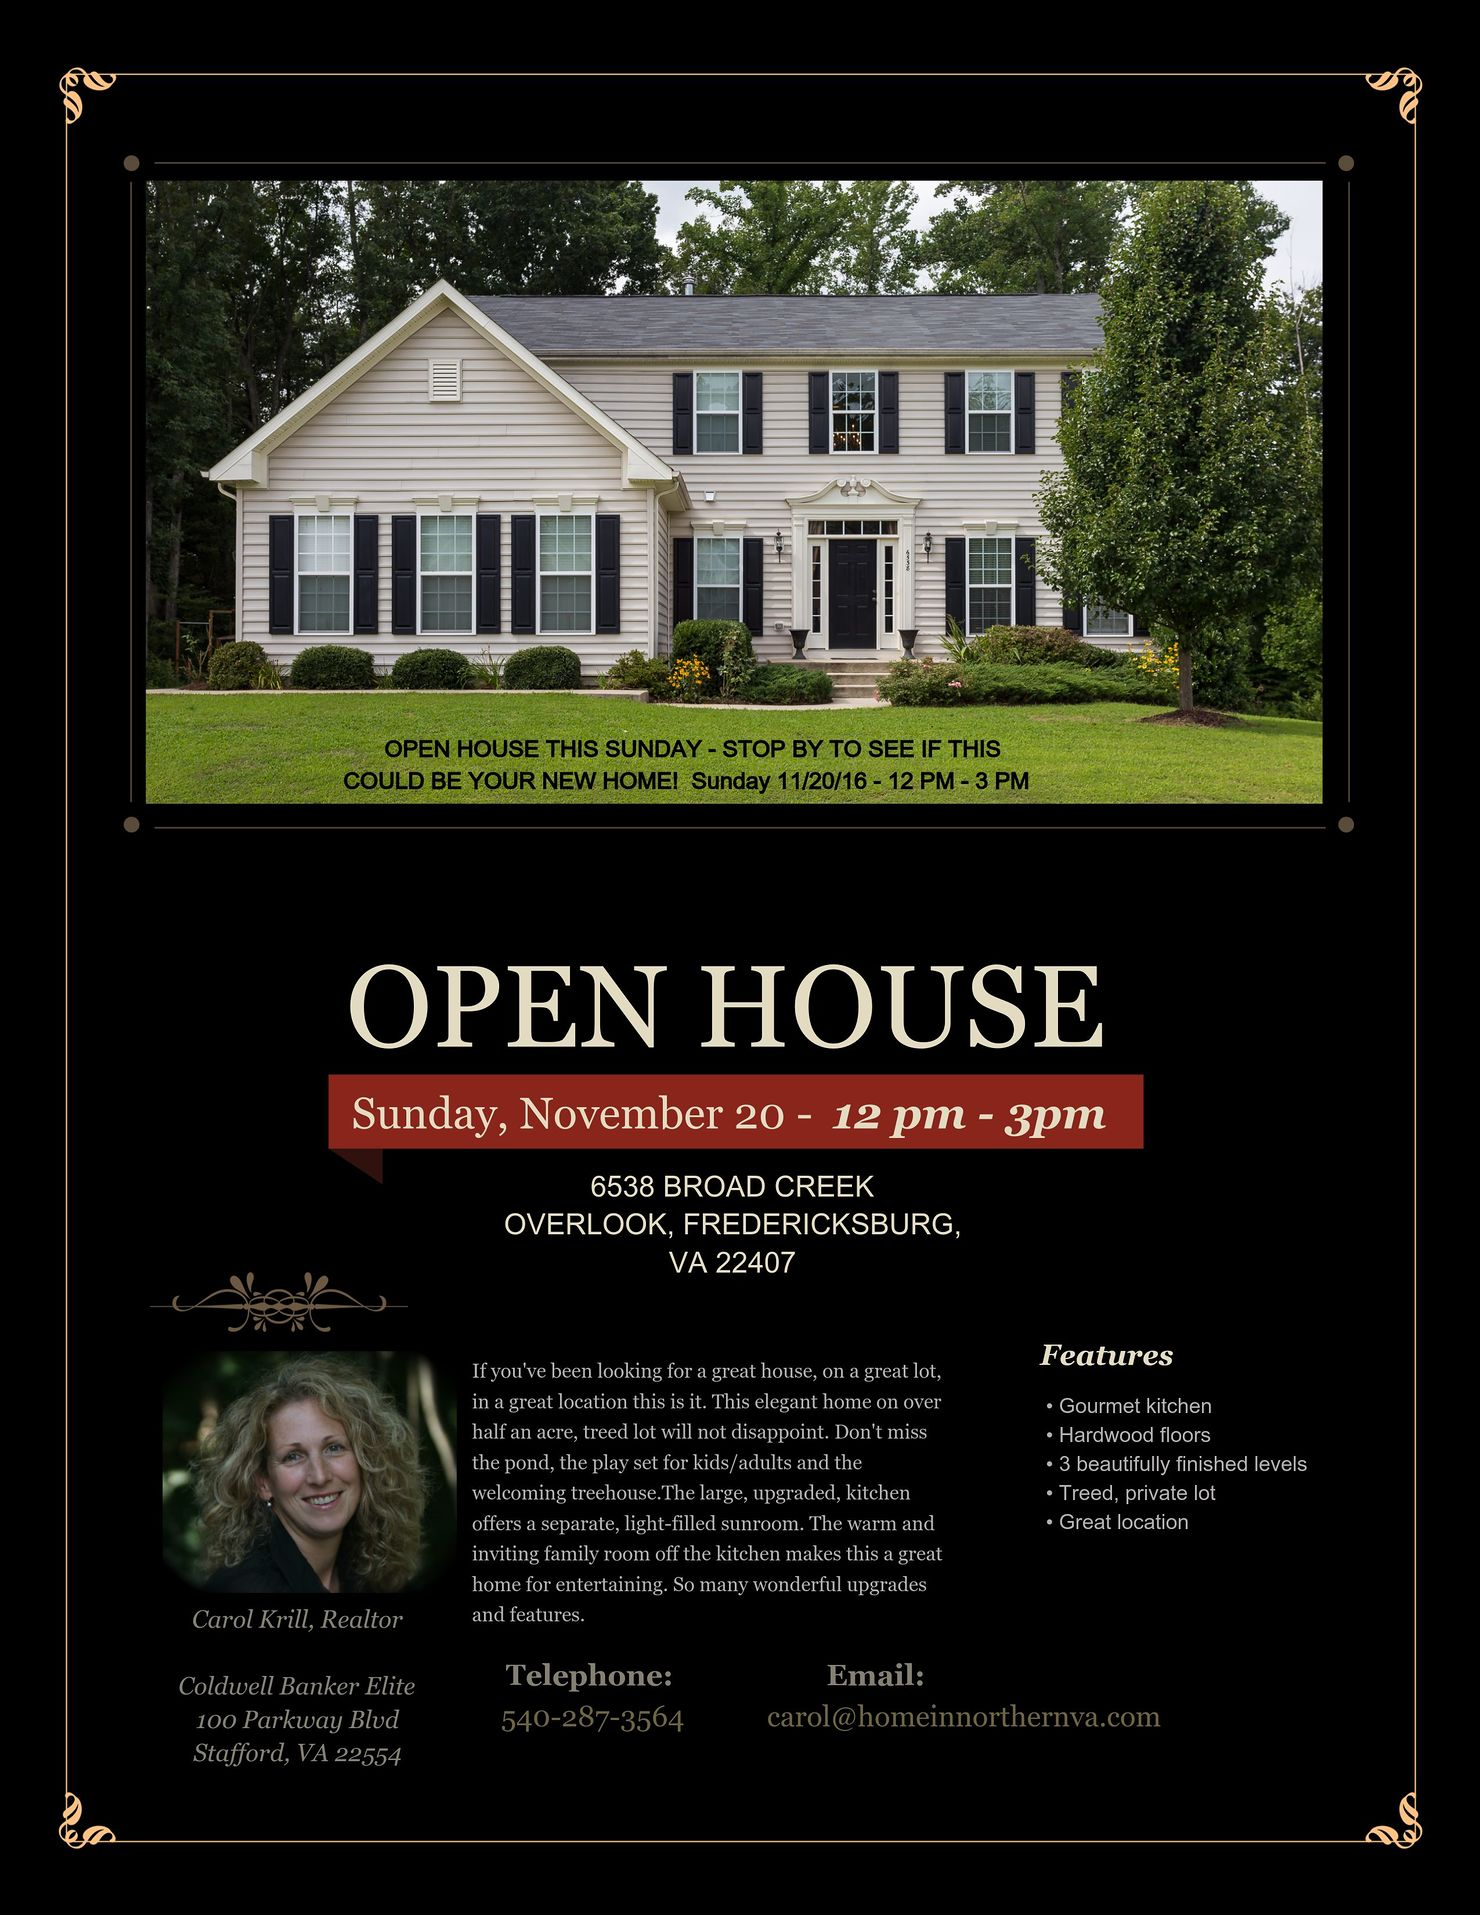 Broad Creek Overlook - Open House Flyer Copy